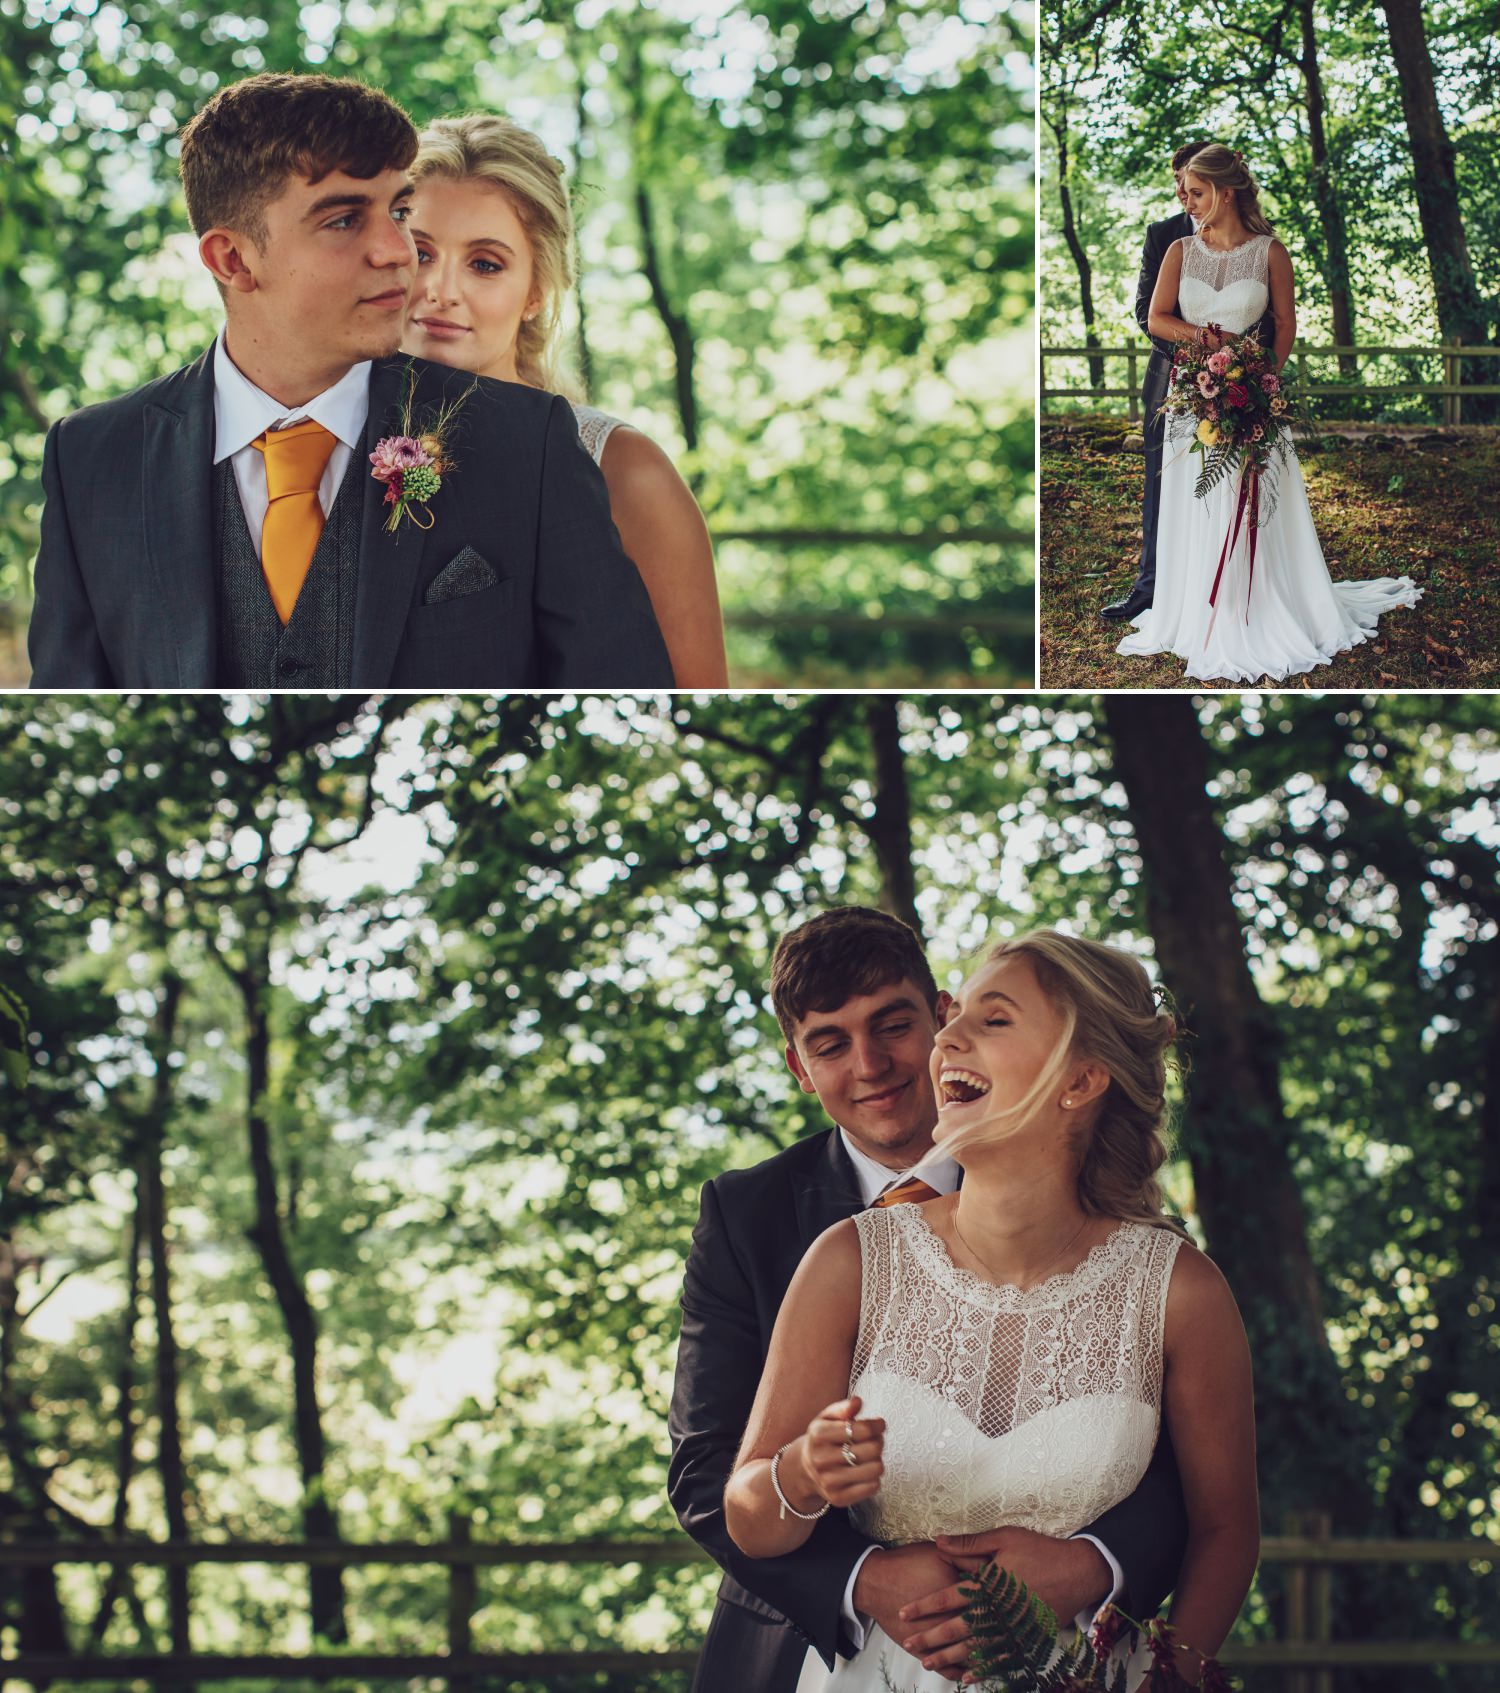 Wedding photography in grounds of plas isaf corwen, north wales